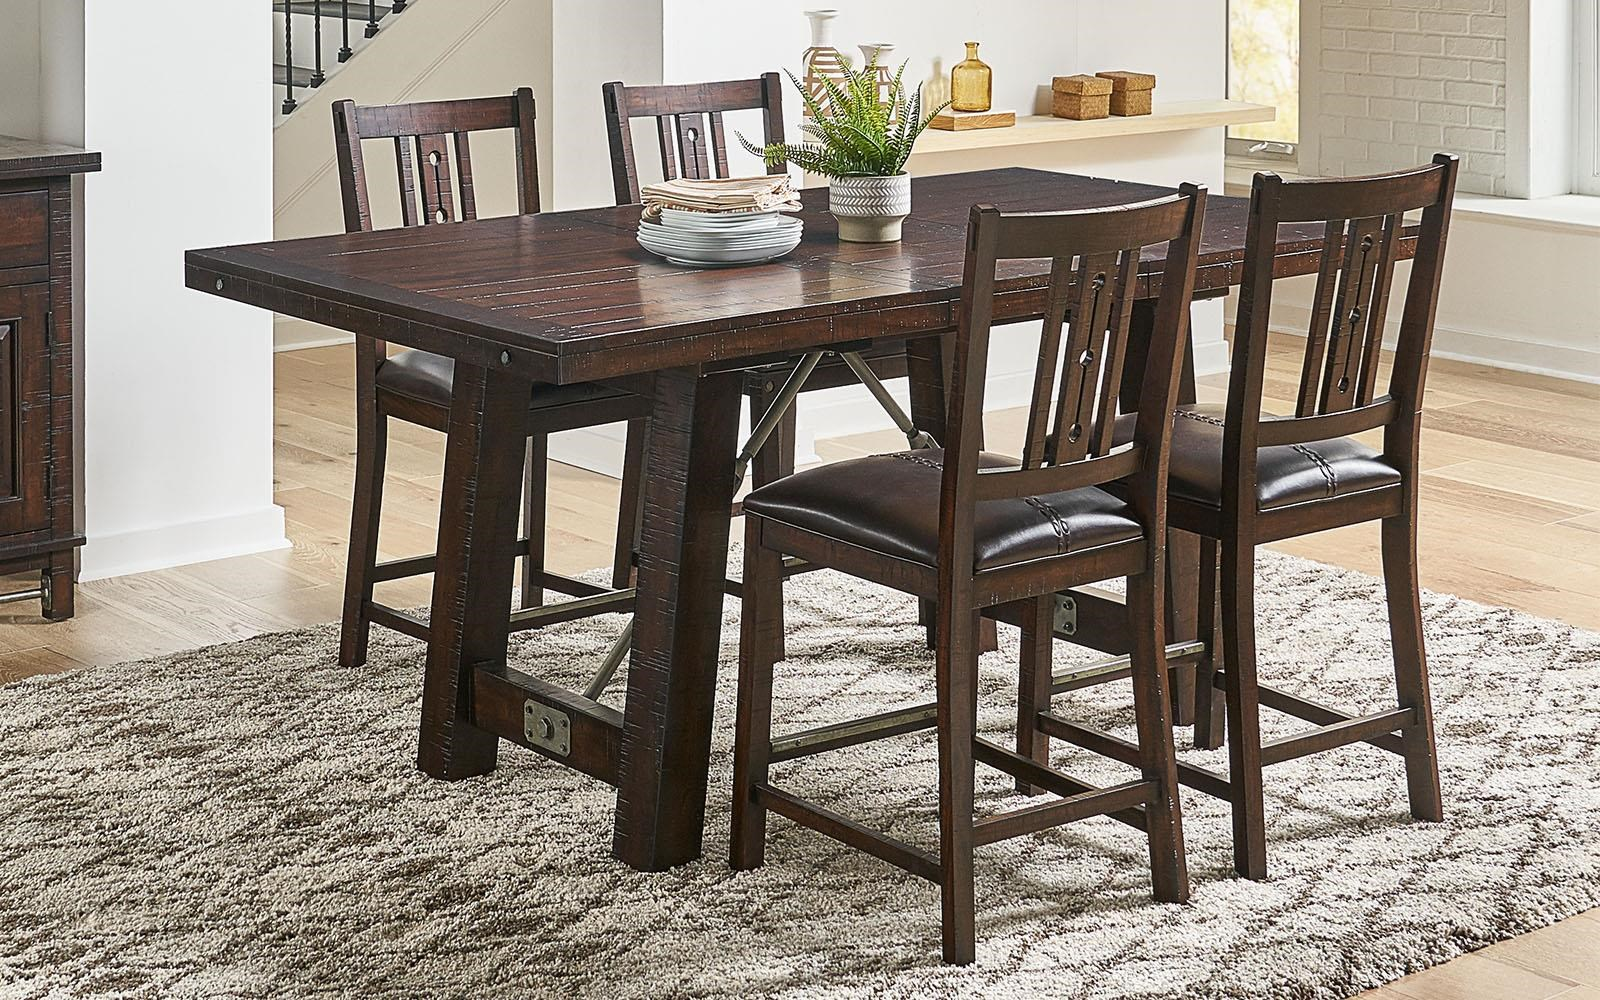 Medina 5 Piece Gathering Table by A-A at Walker's Furniture